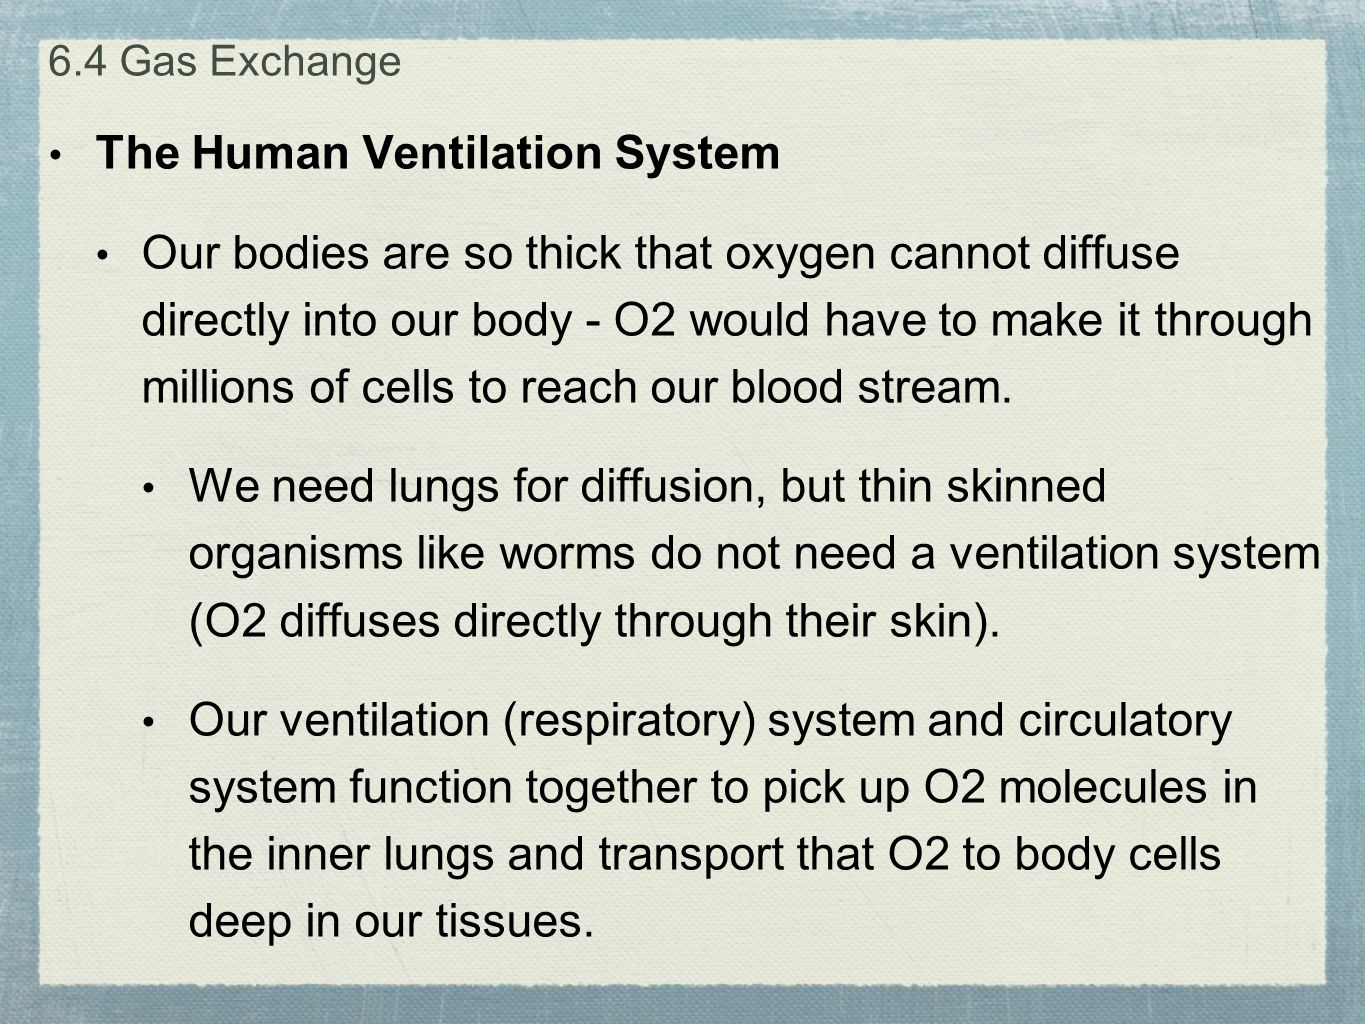 The Human Ventilation System